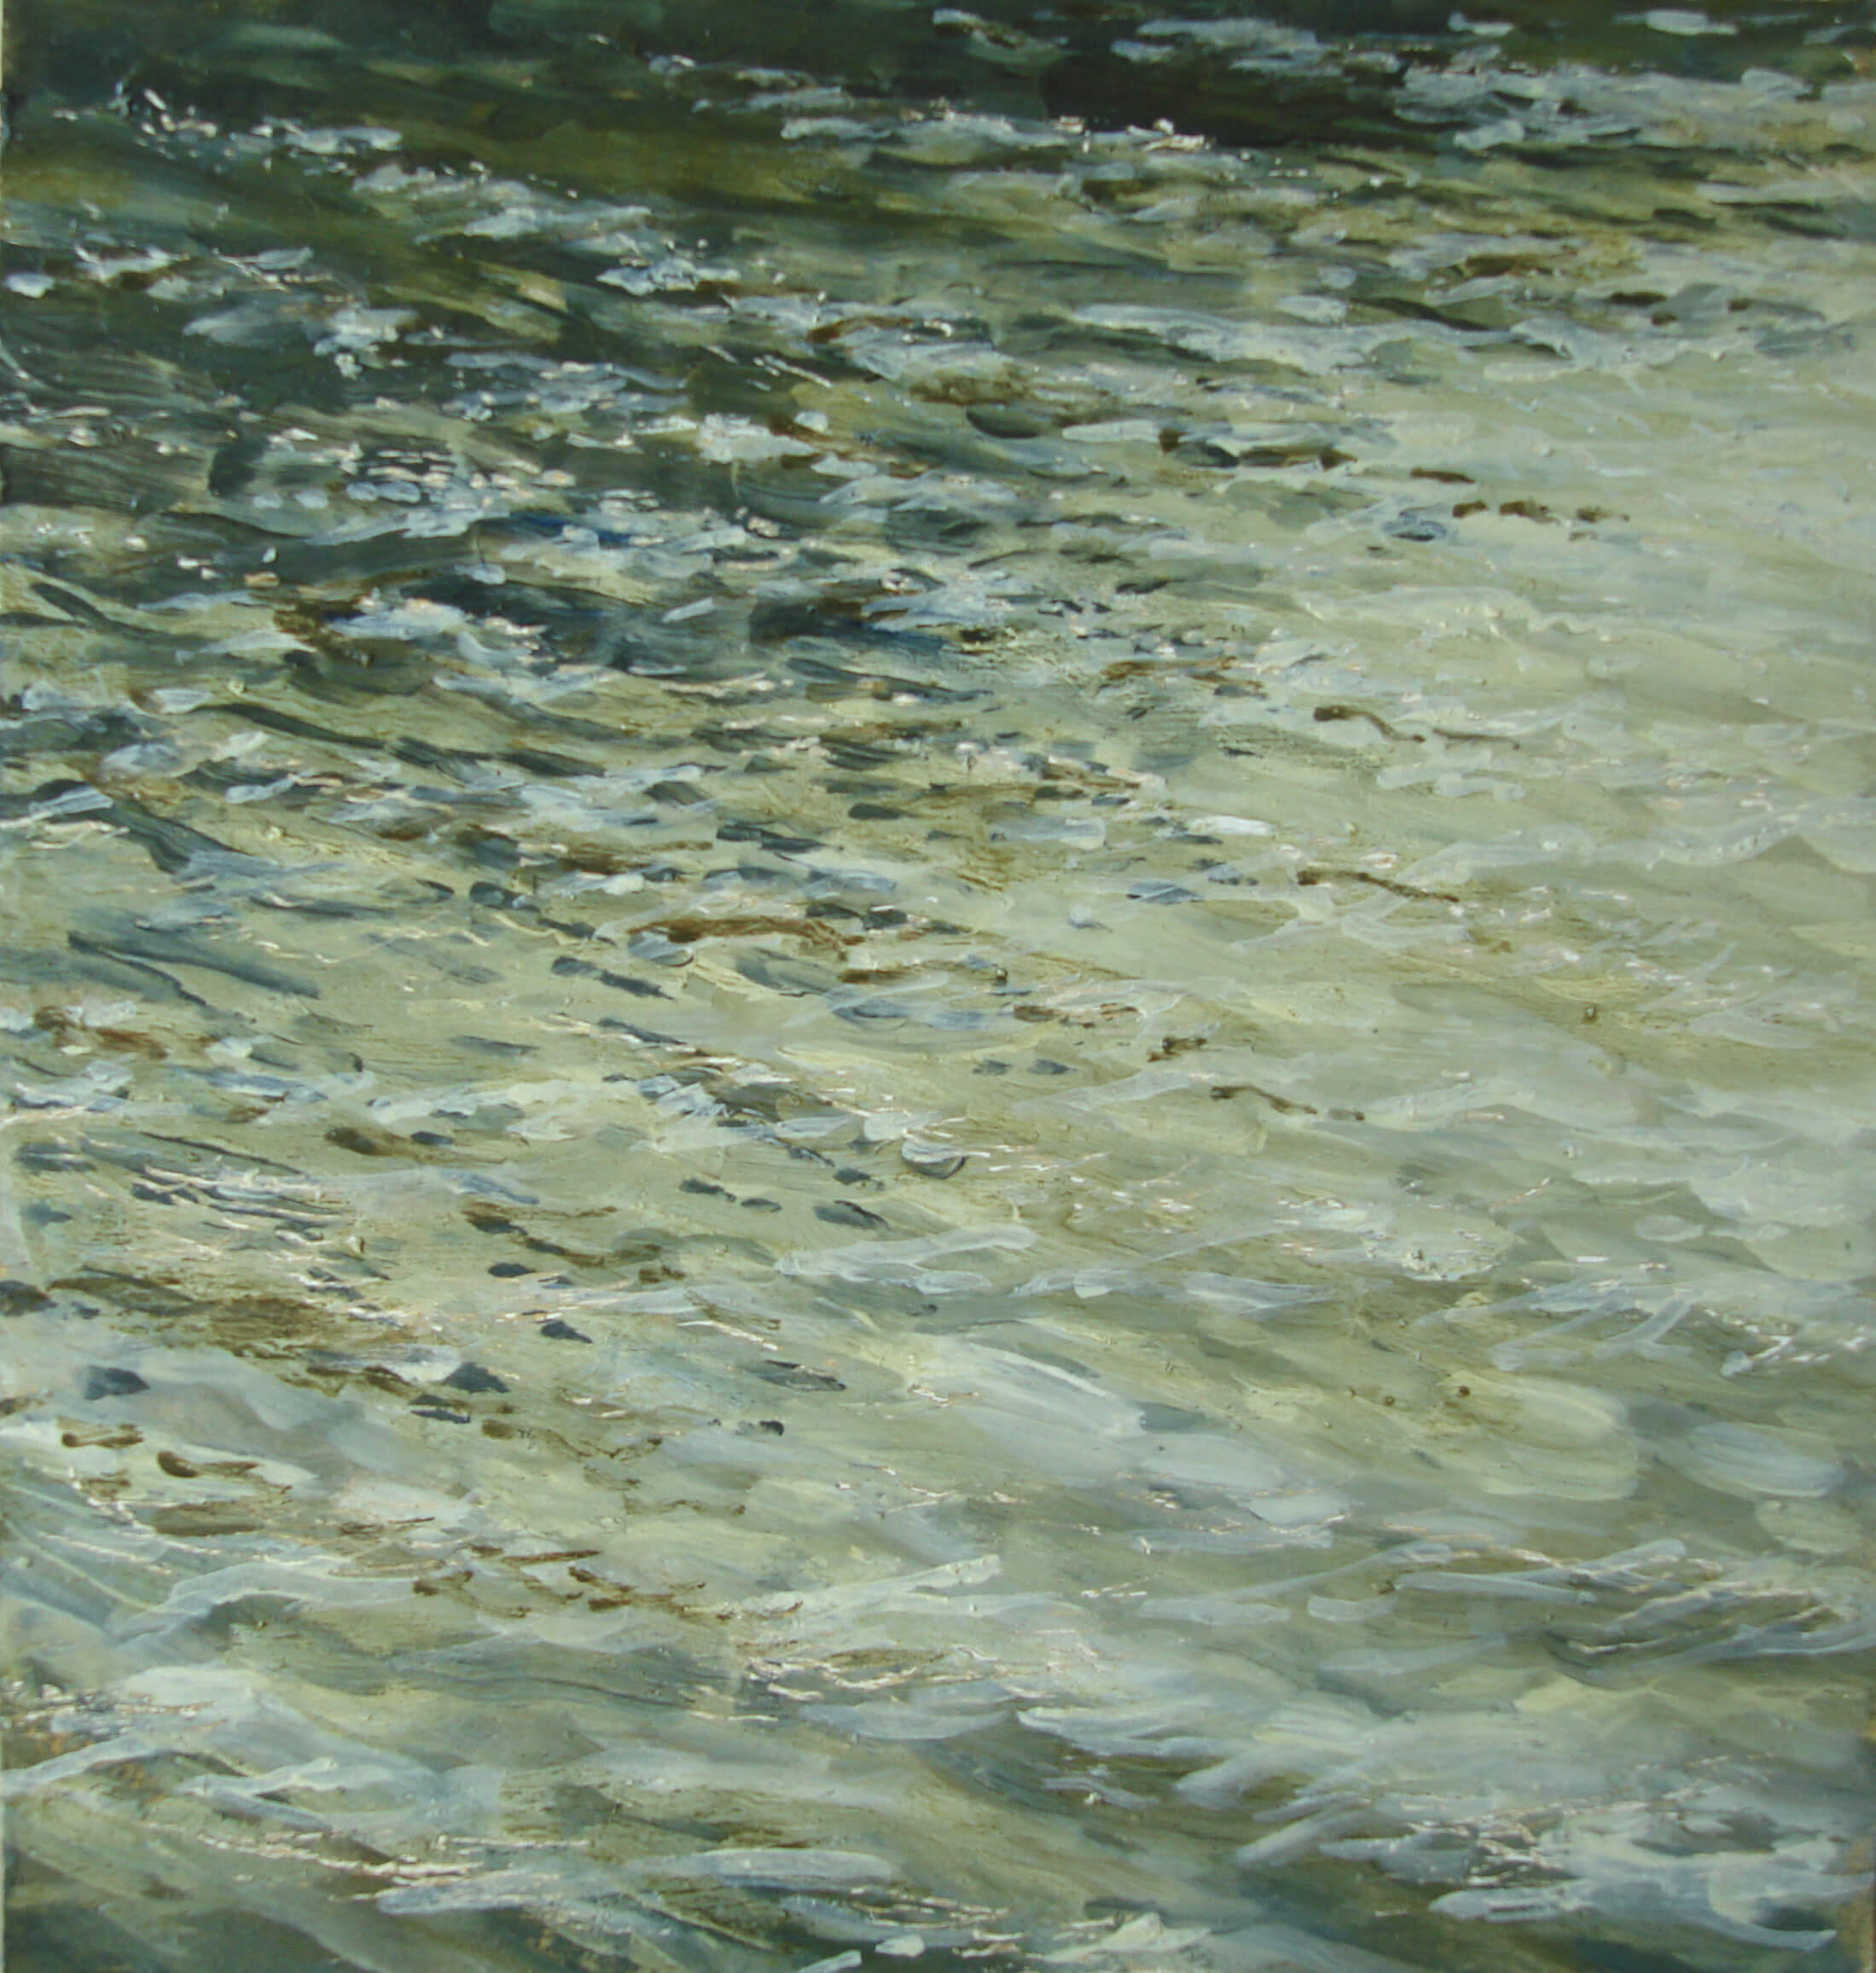 Evening Light Percuil River ( Oil on Panel ) 30 x 27 cm